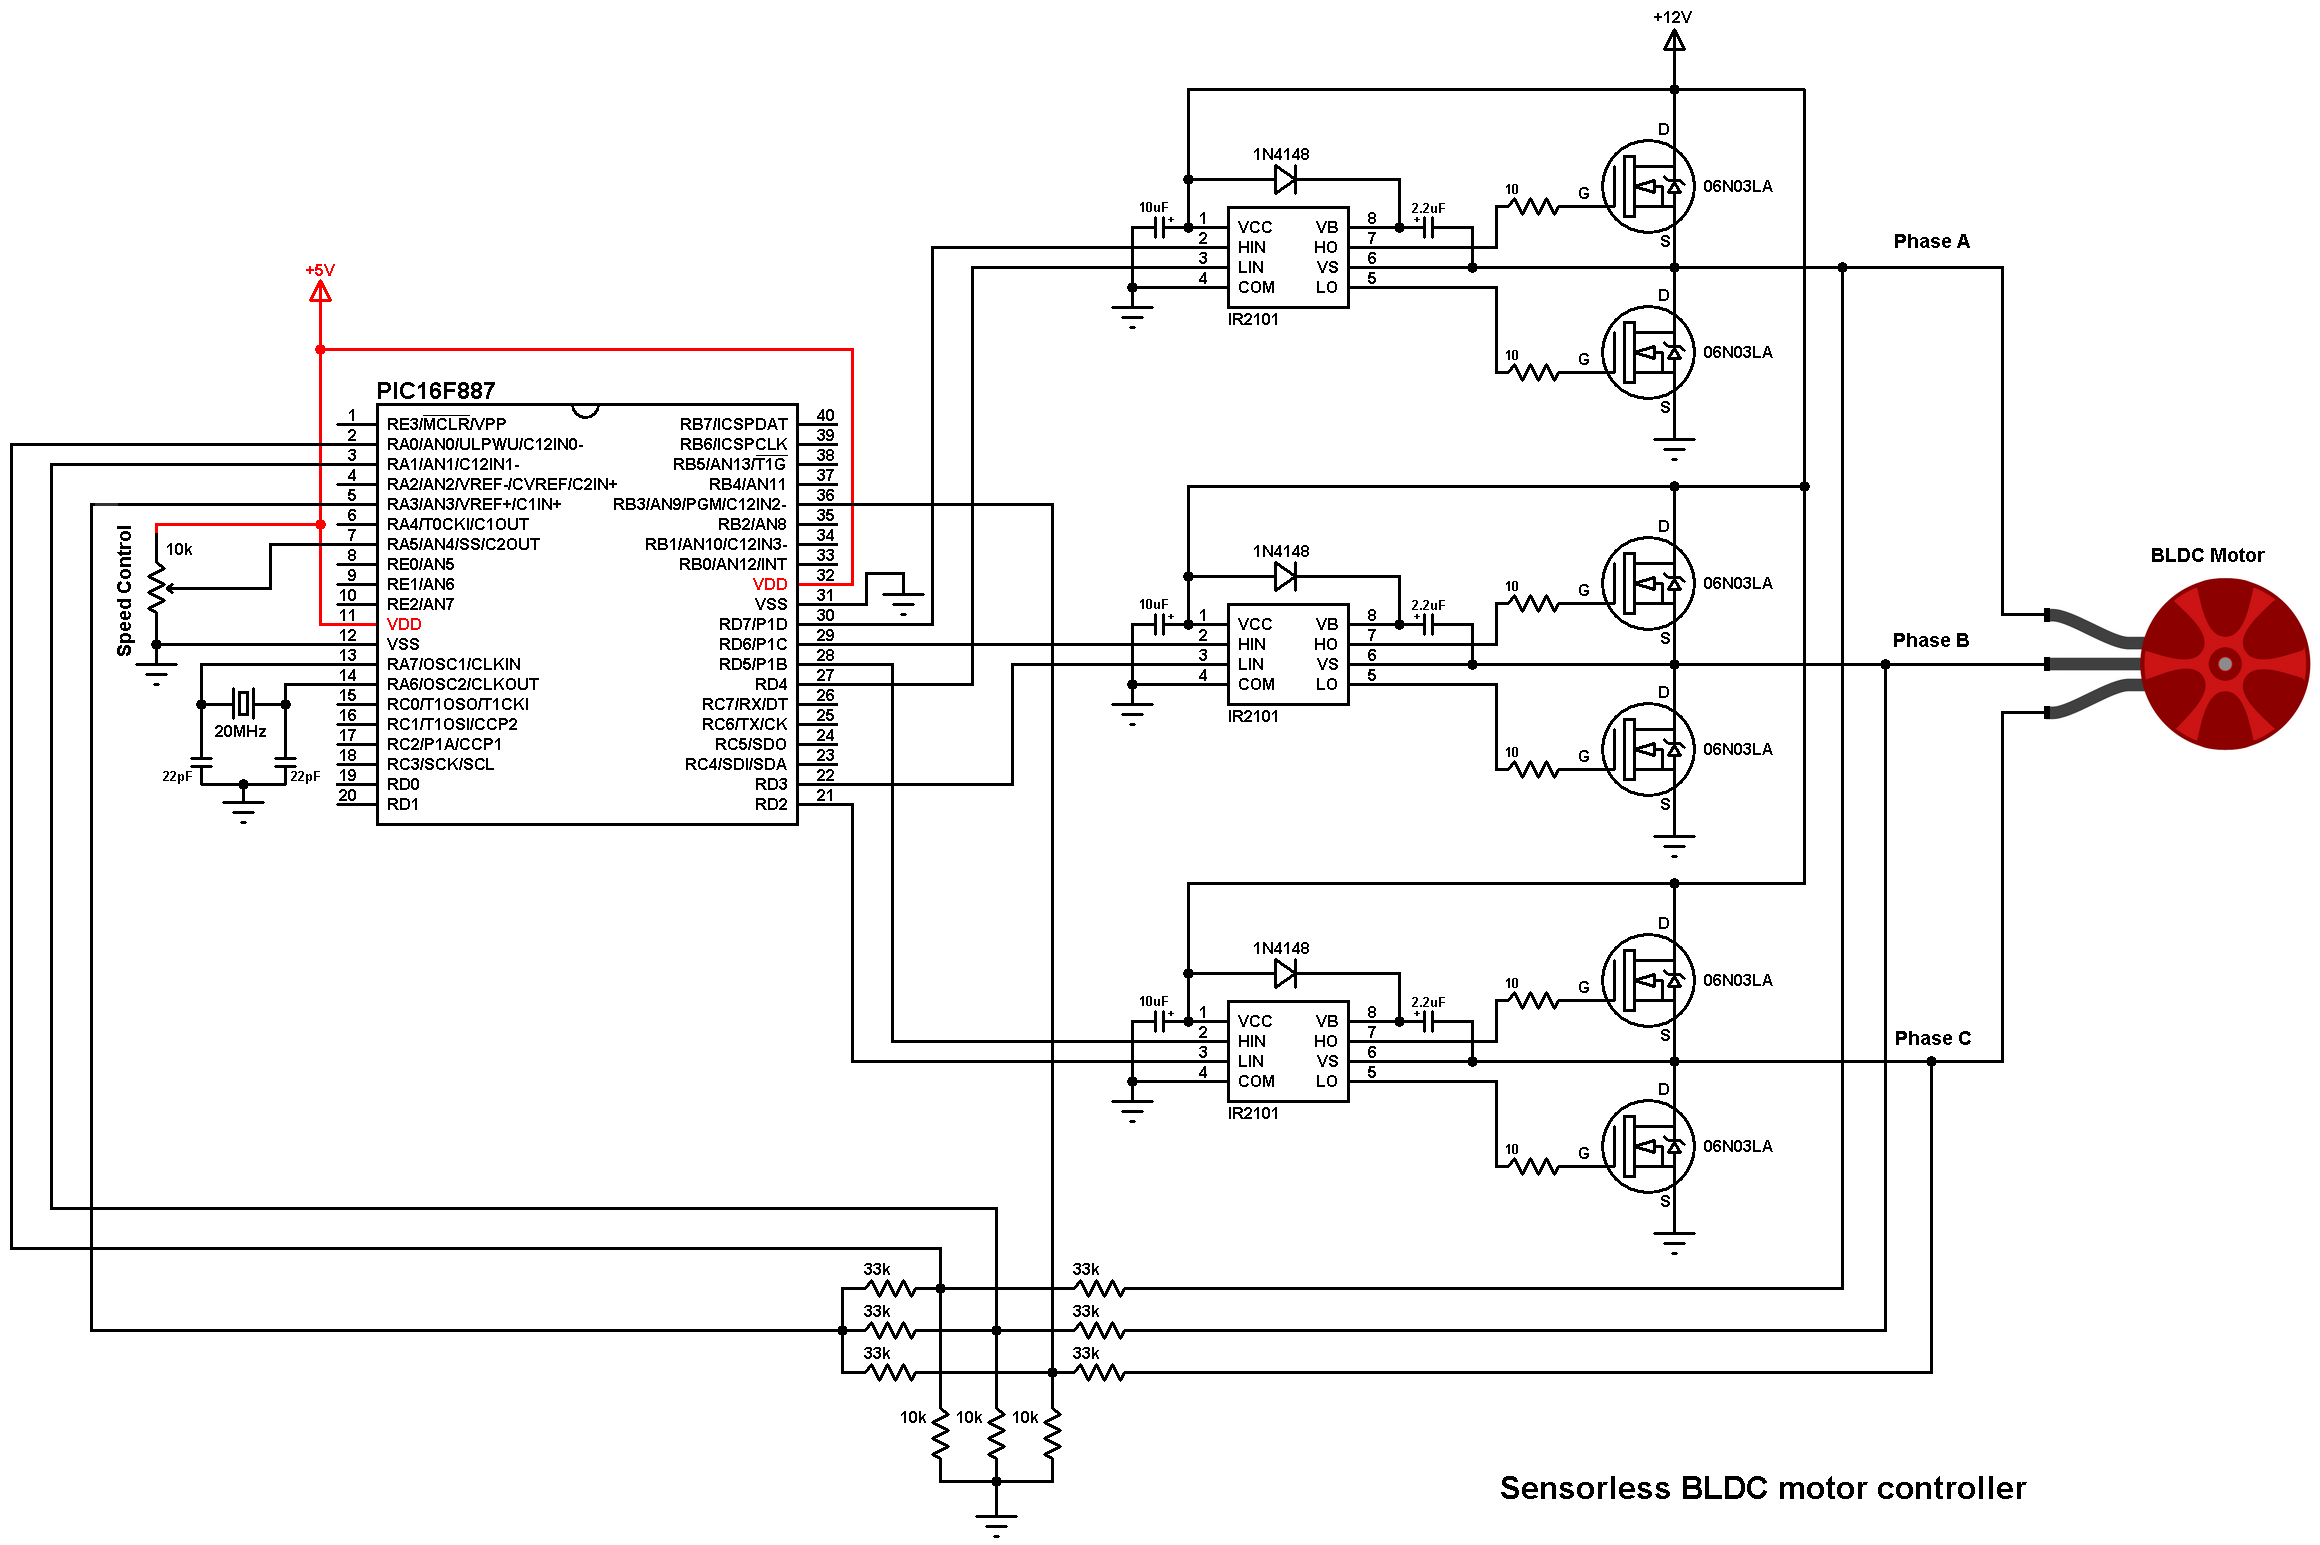 Wiring Diagram Brushless Motor Page 4 And Schematics Controller Diagrams Source Dc Control With Pic16f887 Microcontroller Rc Esc Circuit Boat